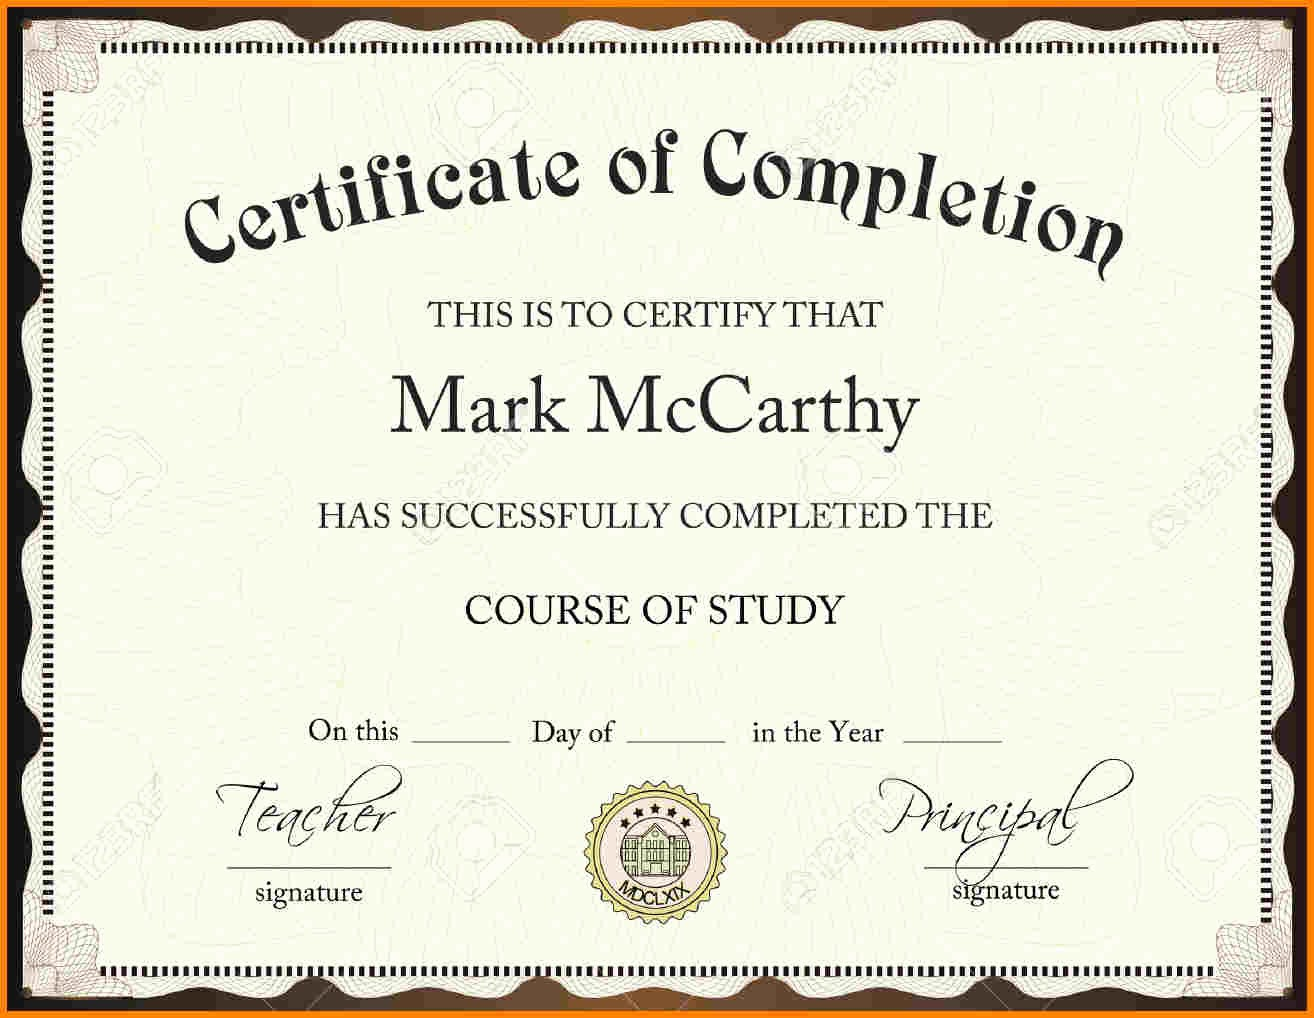 Training Certificate Template Free Download Fresh Certificate Pletion Template Free Download